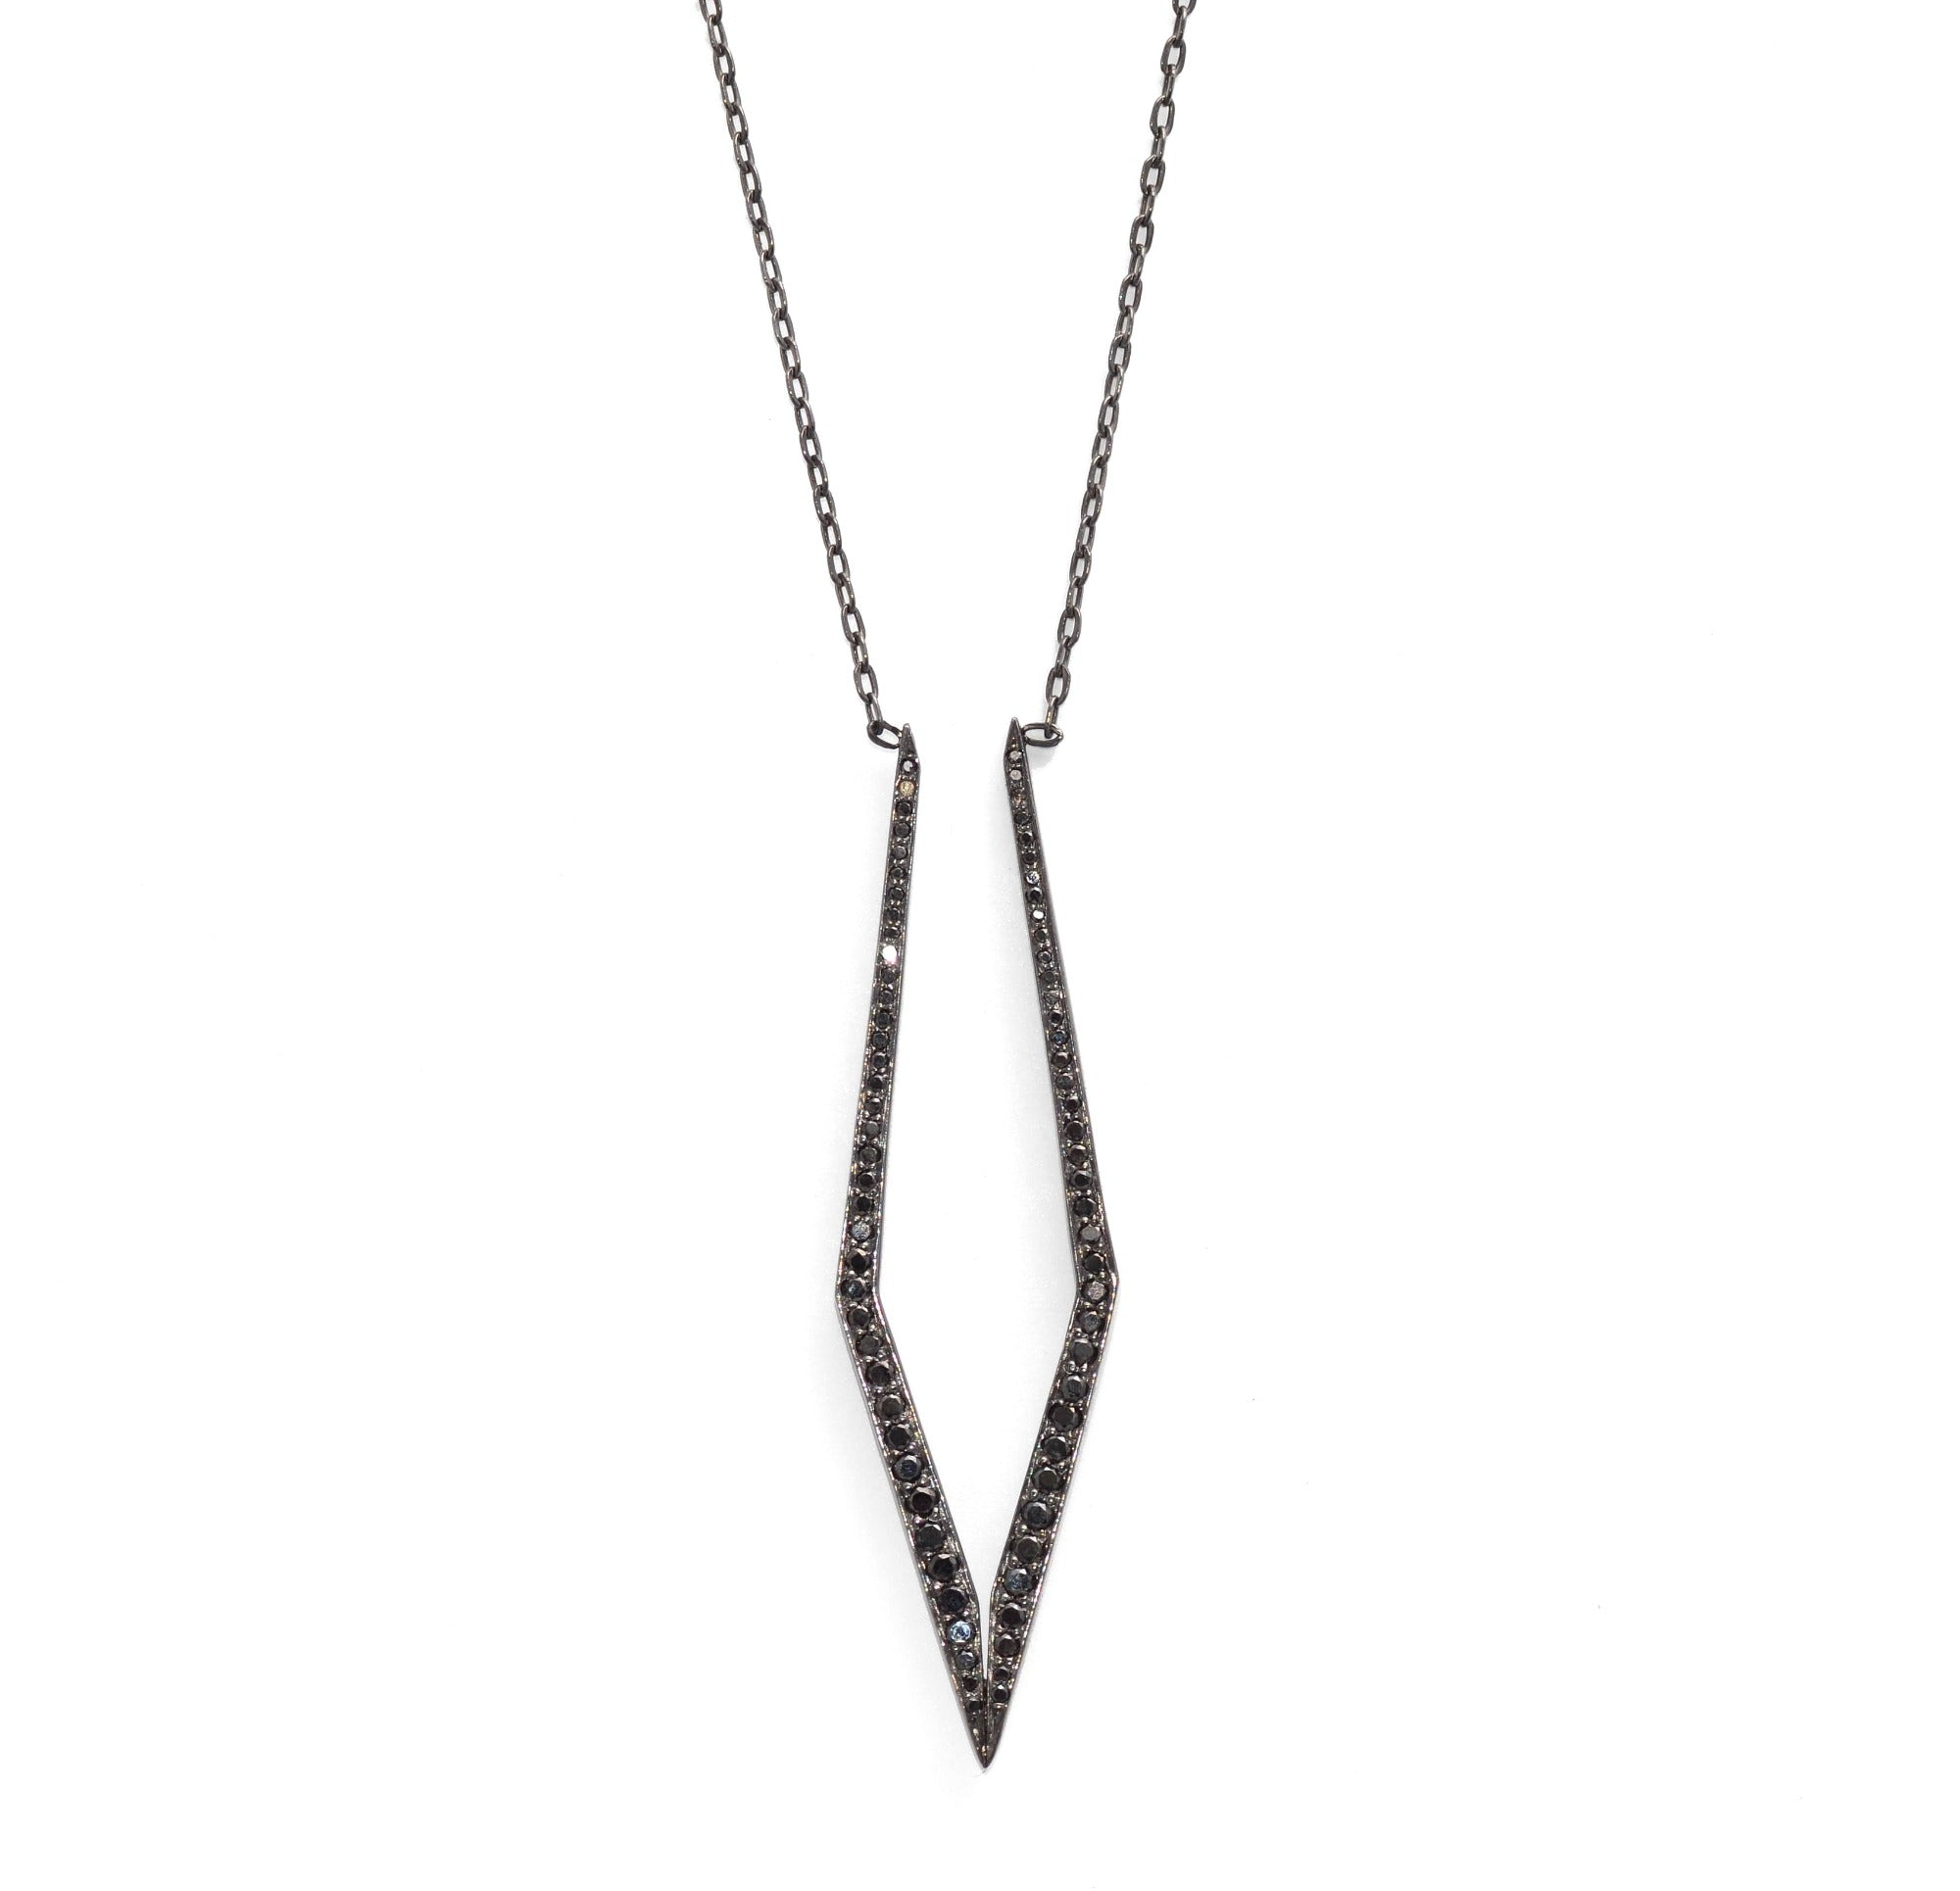 mirror trace necklace